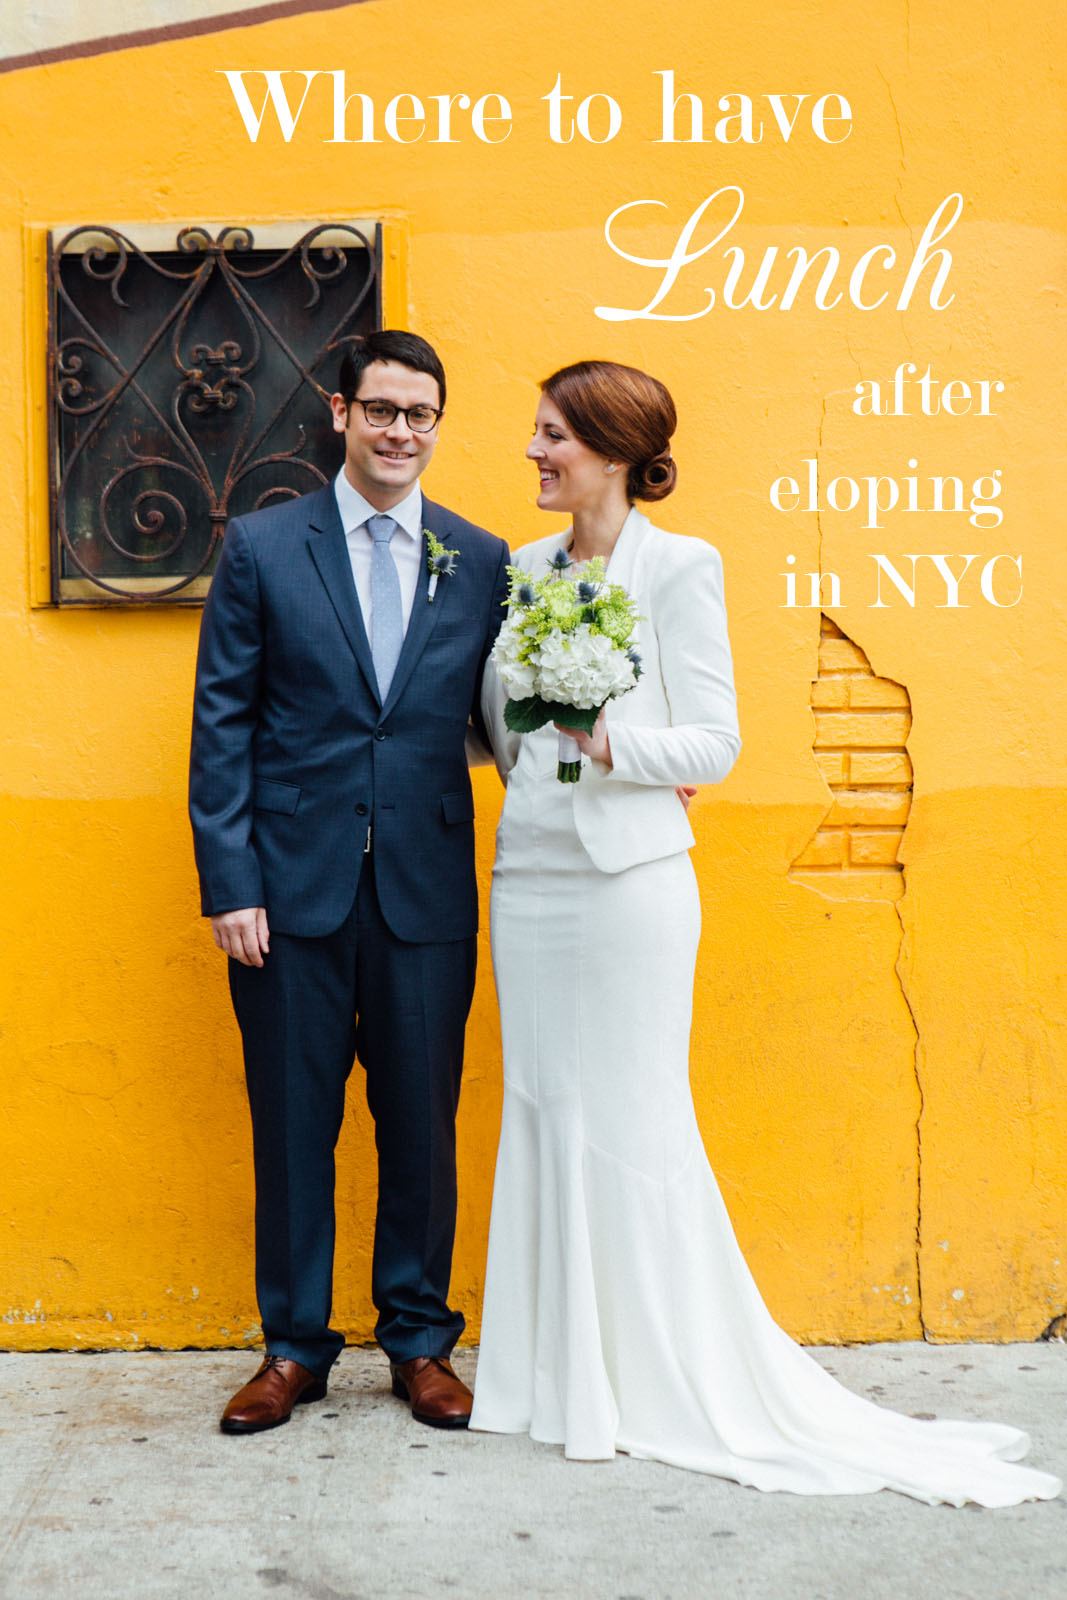 nyc elopement lunch spots